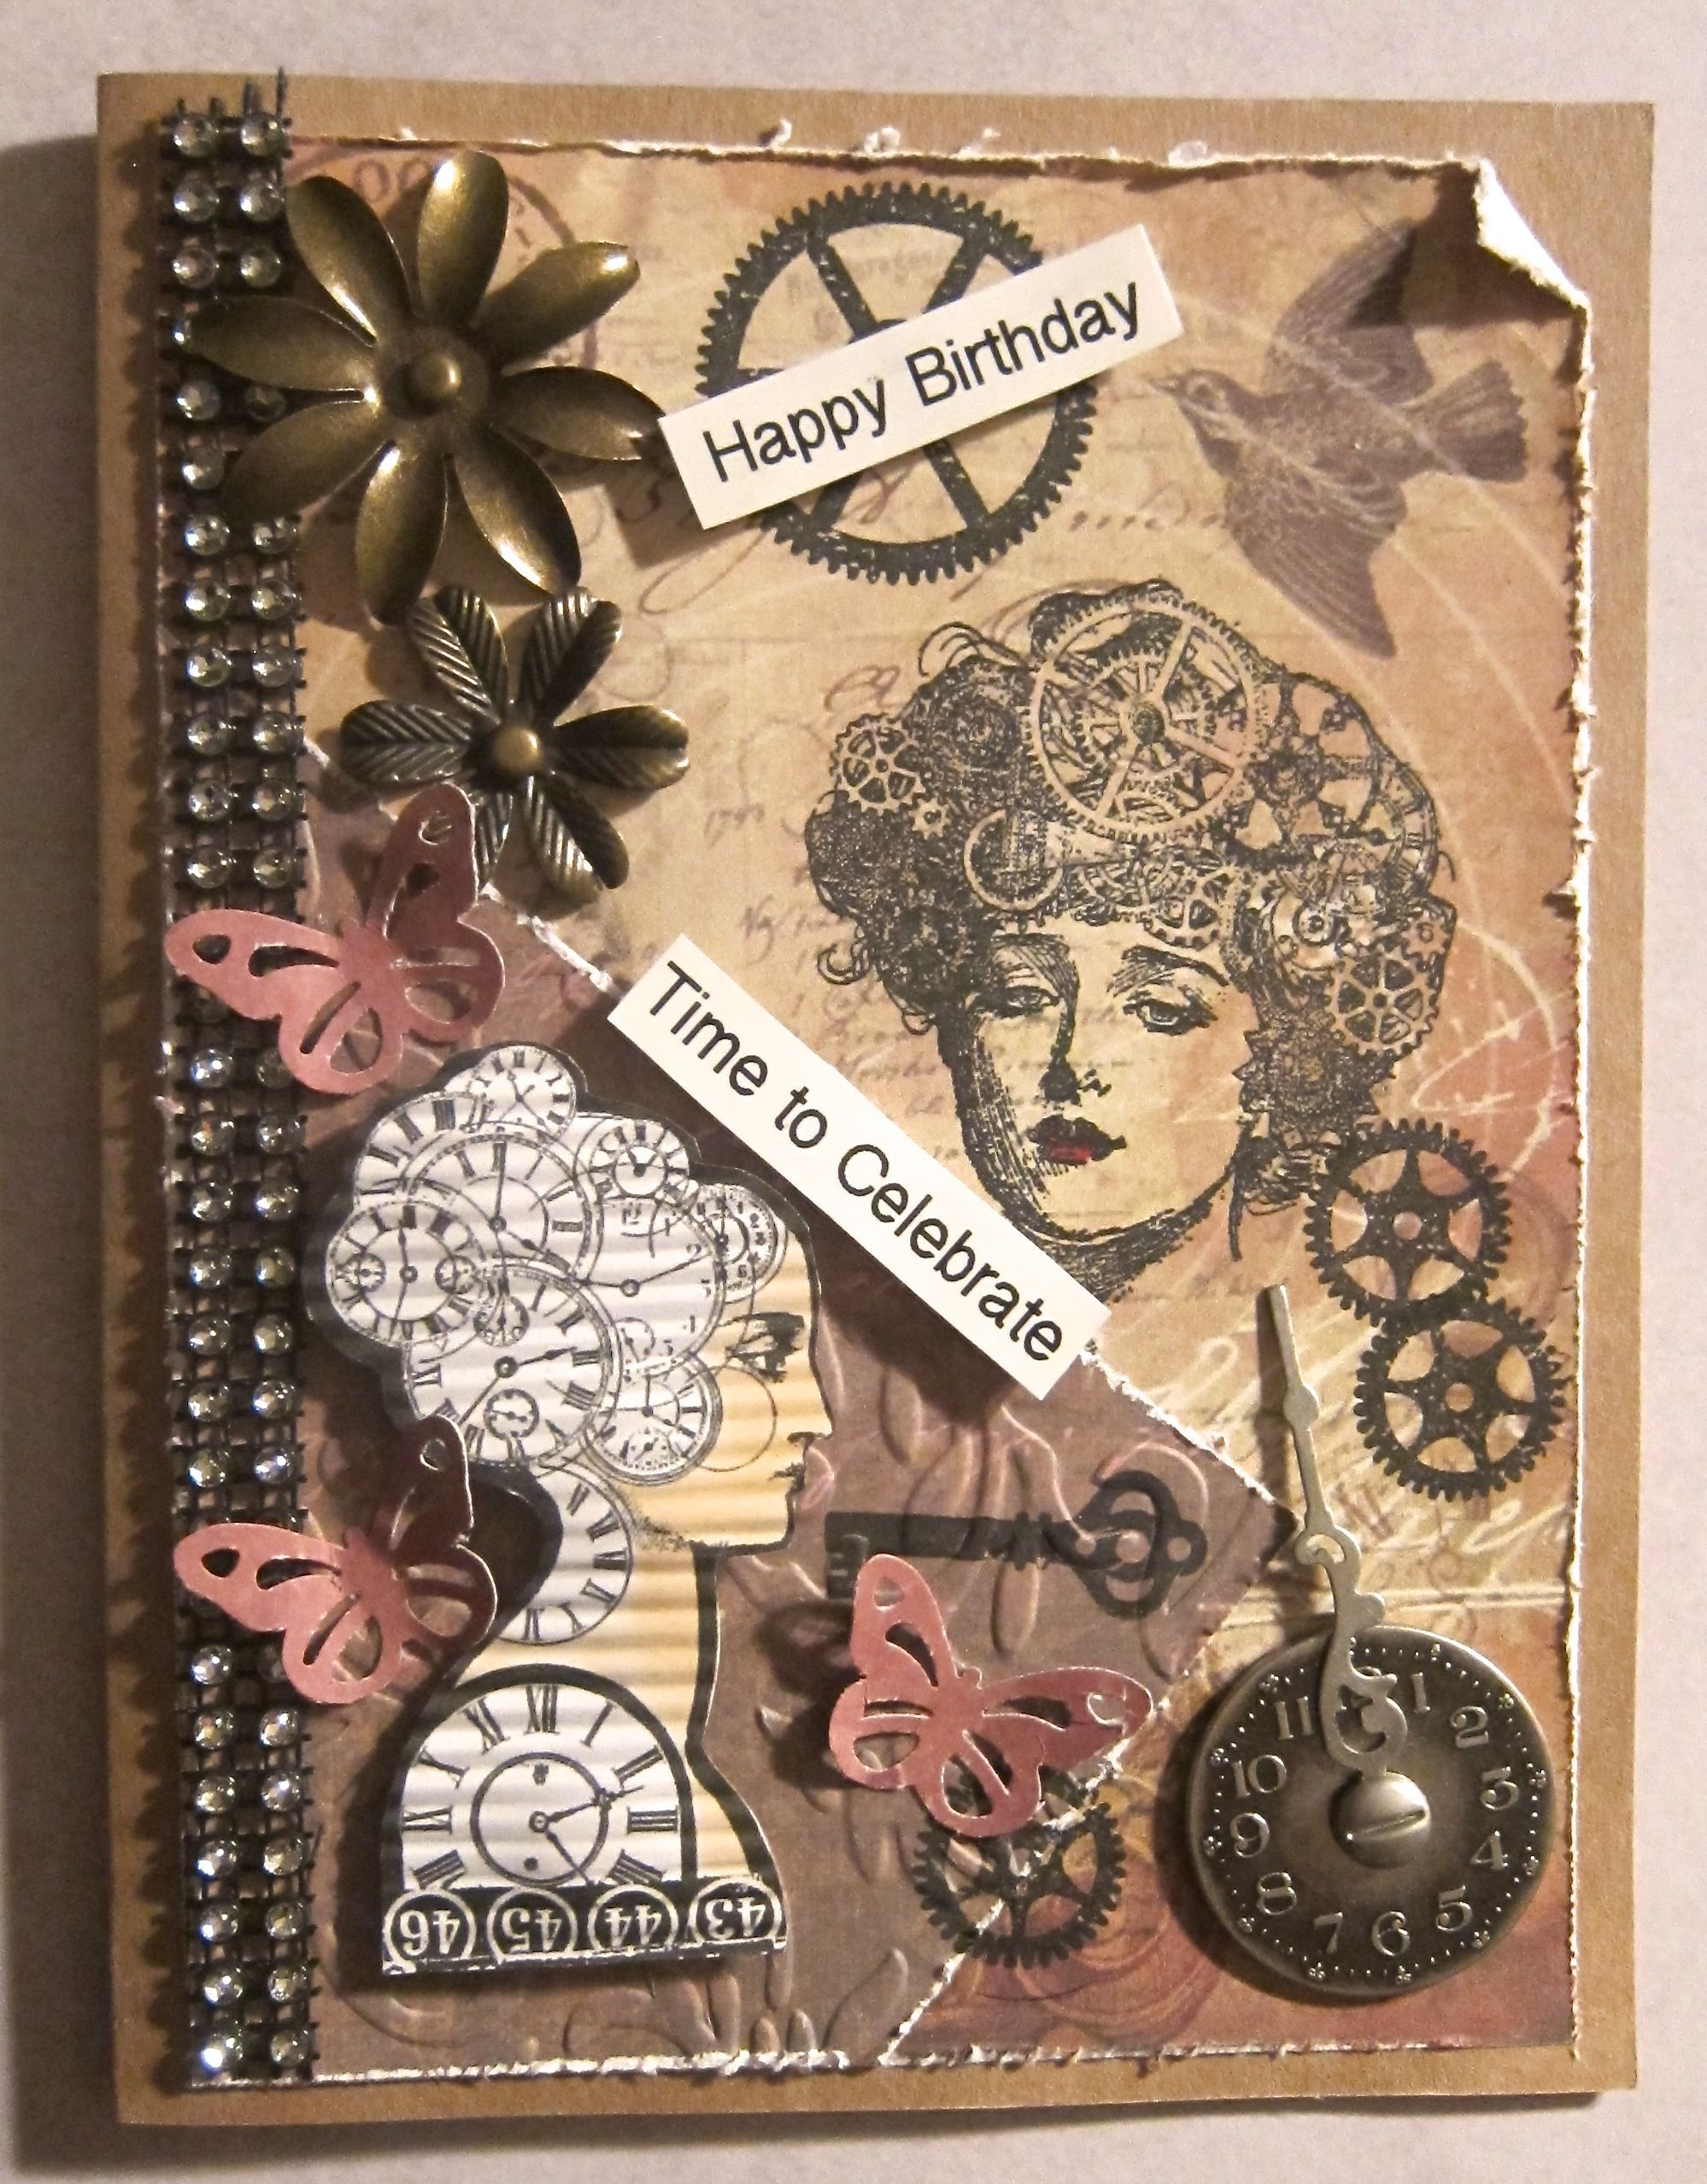 Steampunk Collage Birthday Card For A Woman Birthday Cards Time To Celebrate Cards